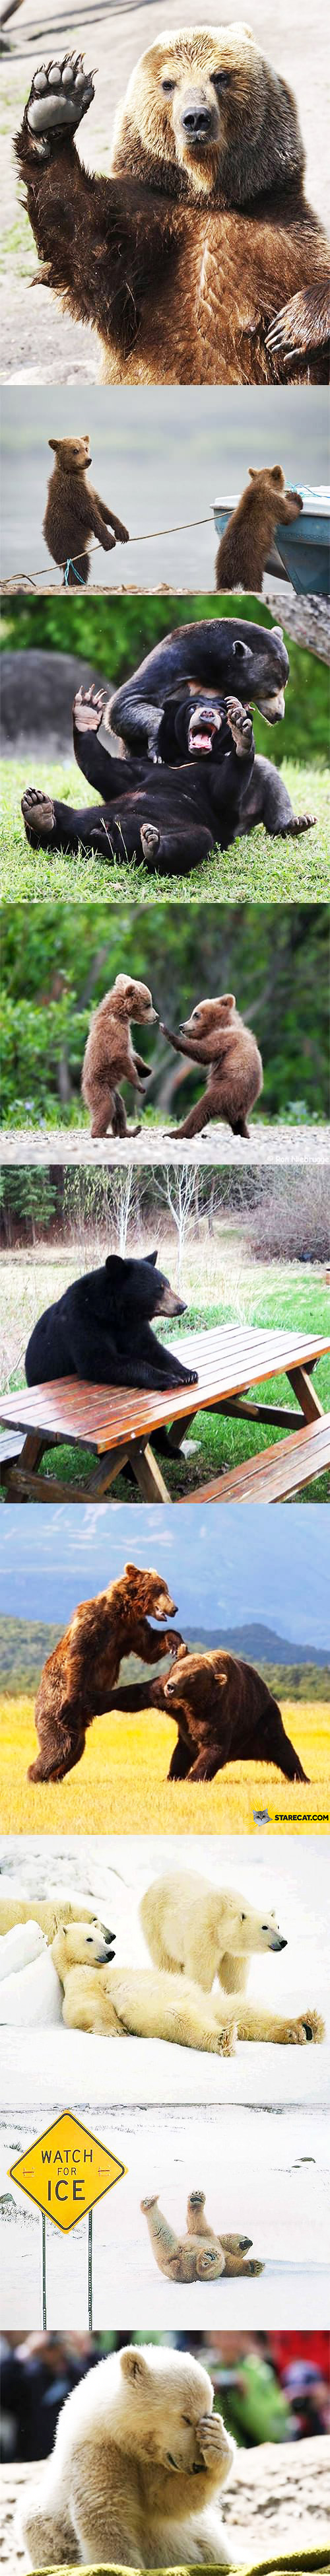 Cute bears funny pictures photos